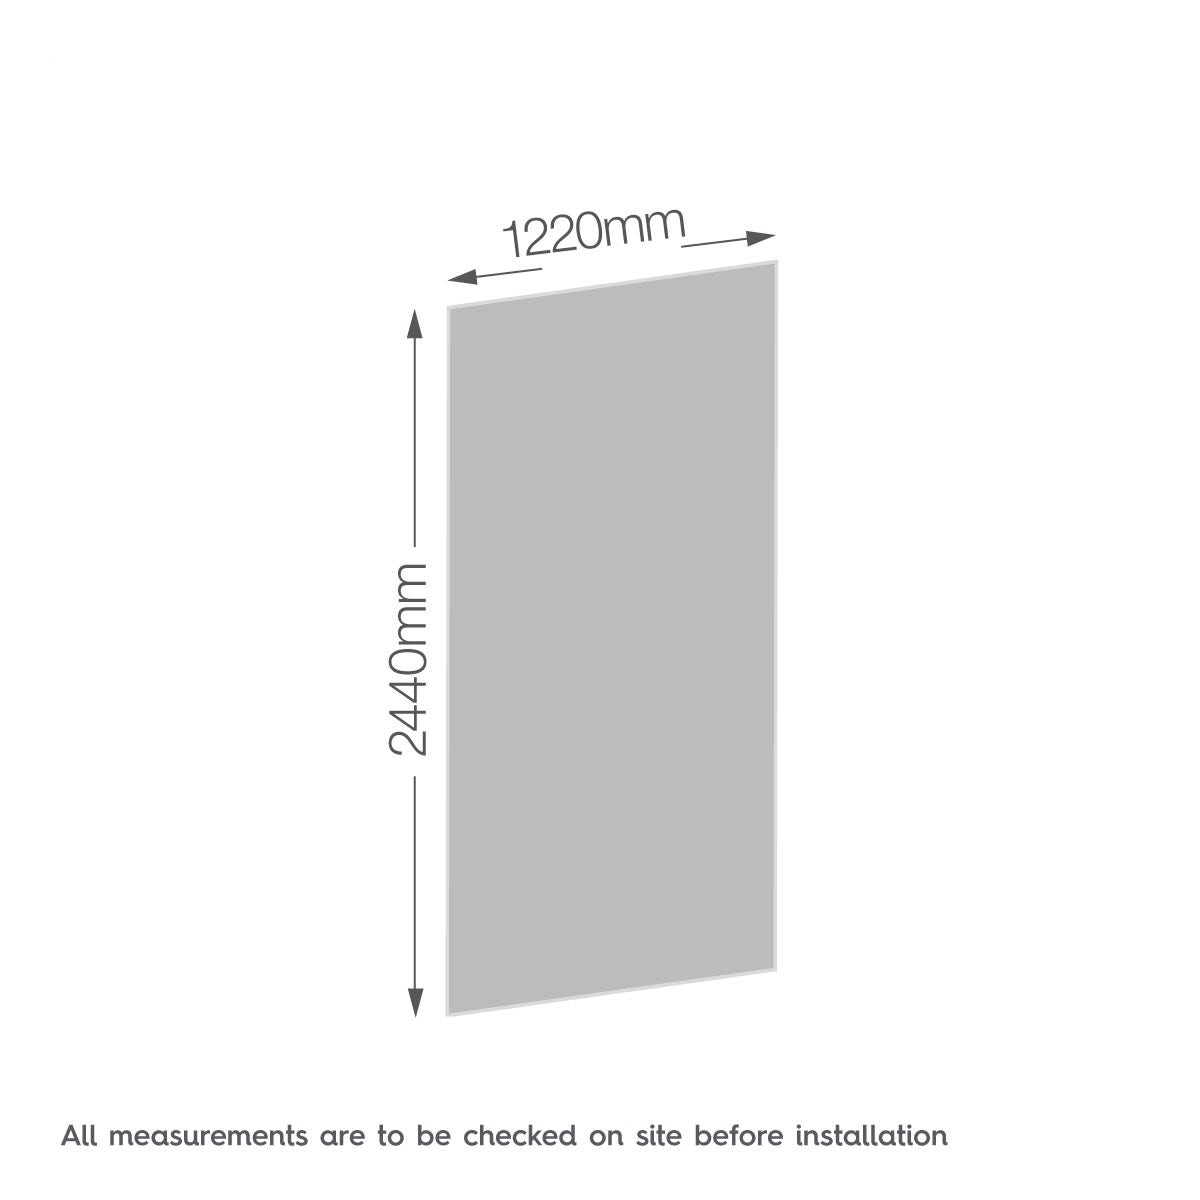 Dimensions for Zenolite plus jet acrylic shower wall panel 2440 x 1220